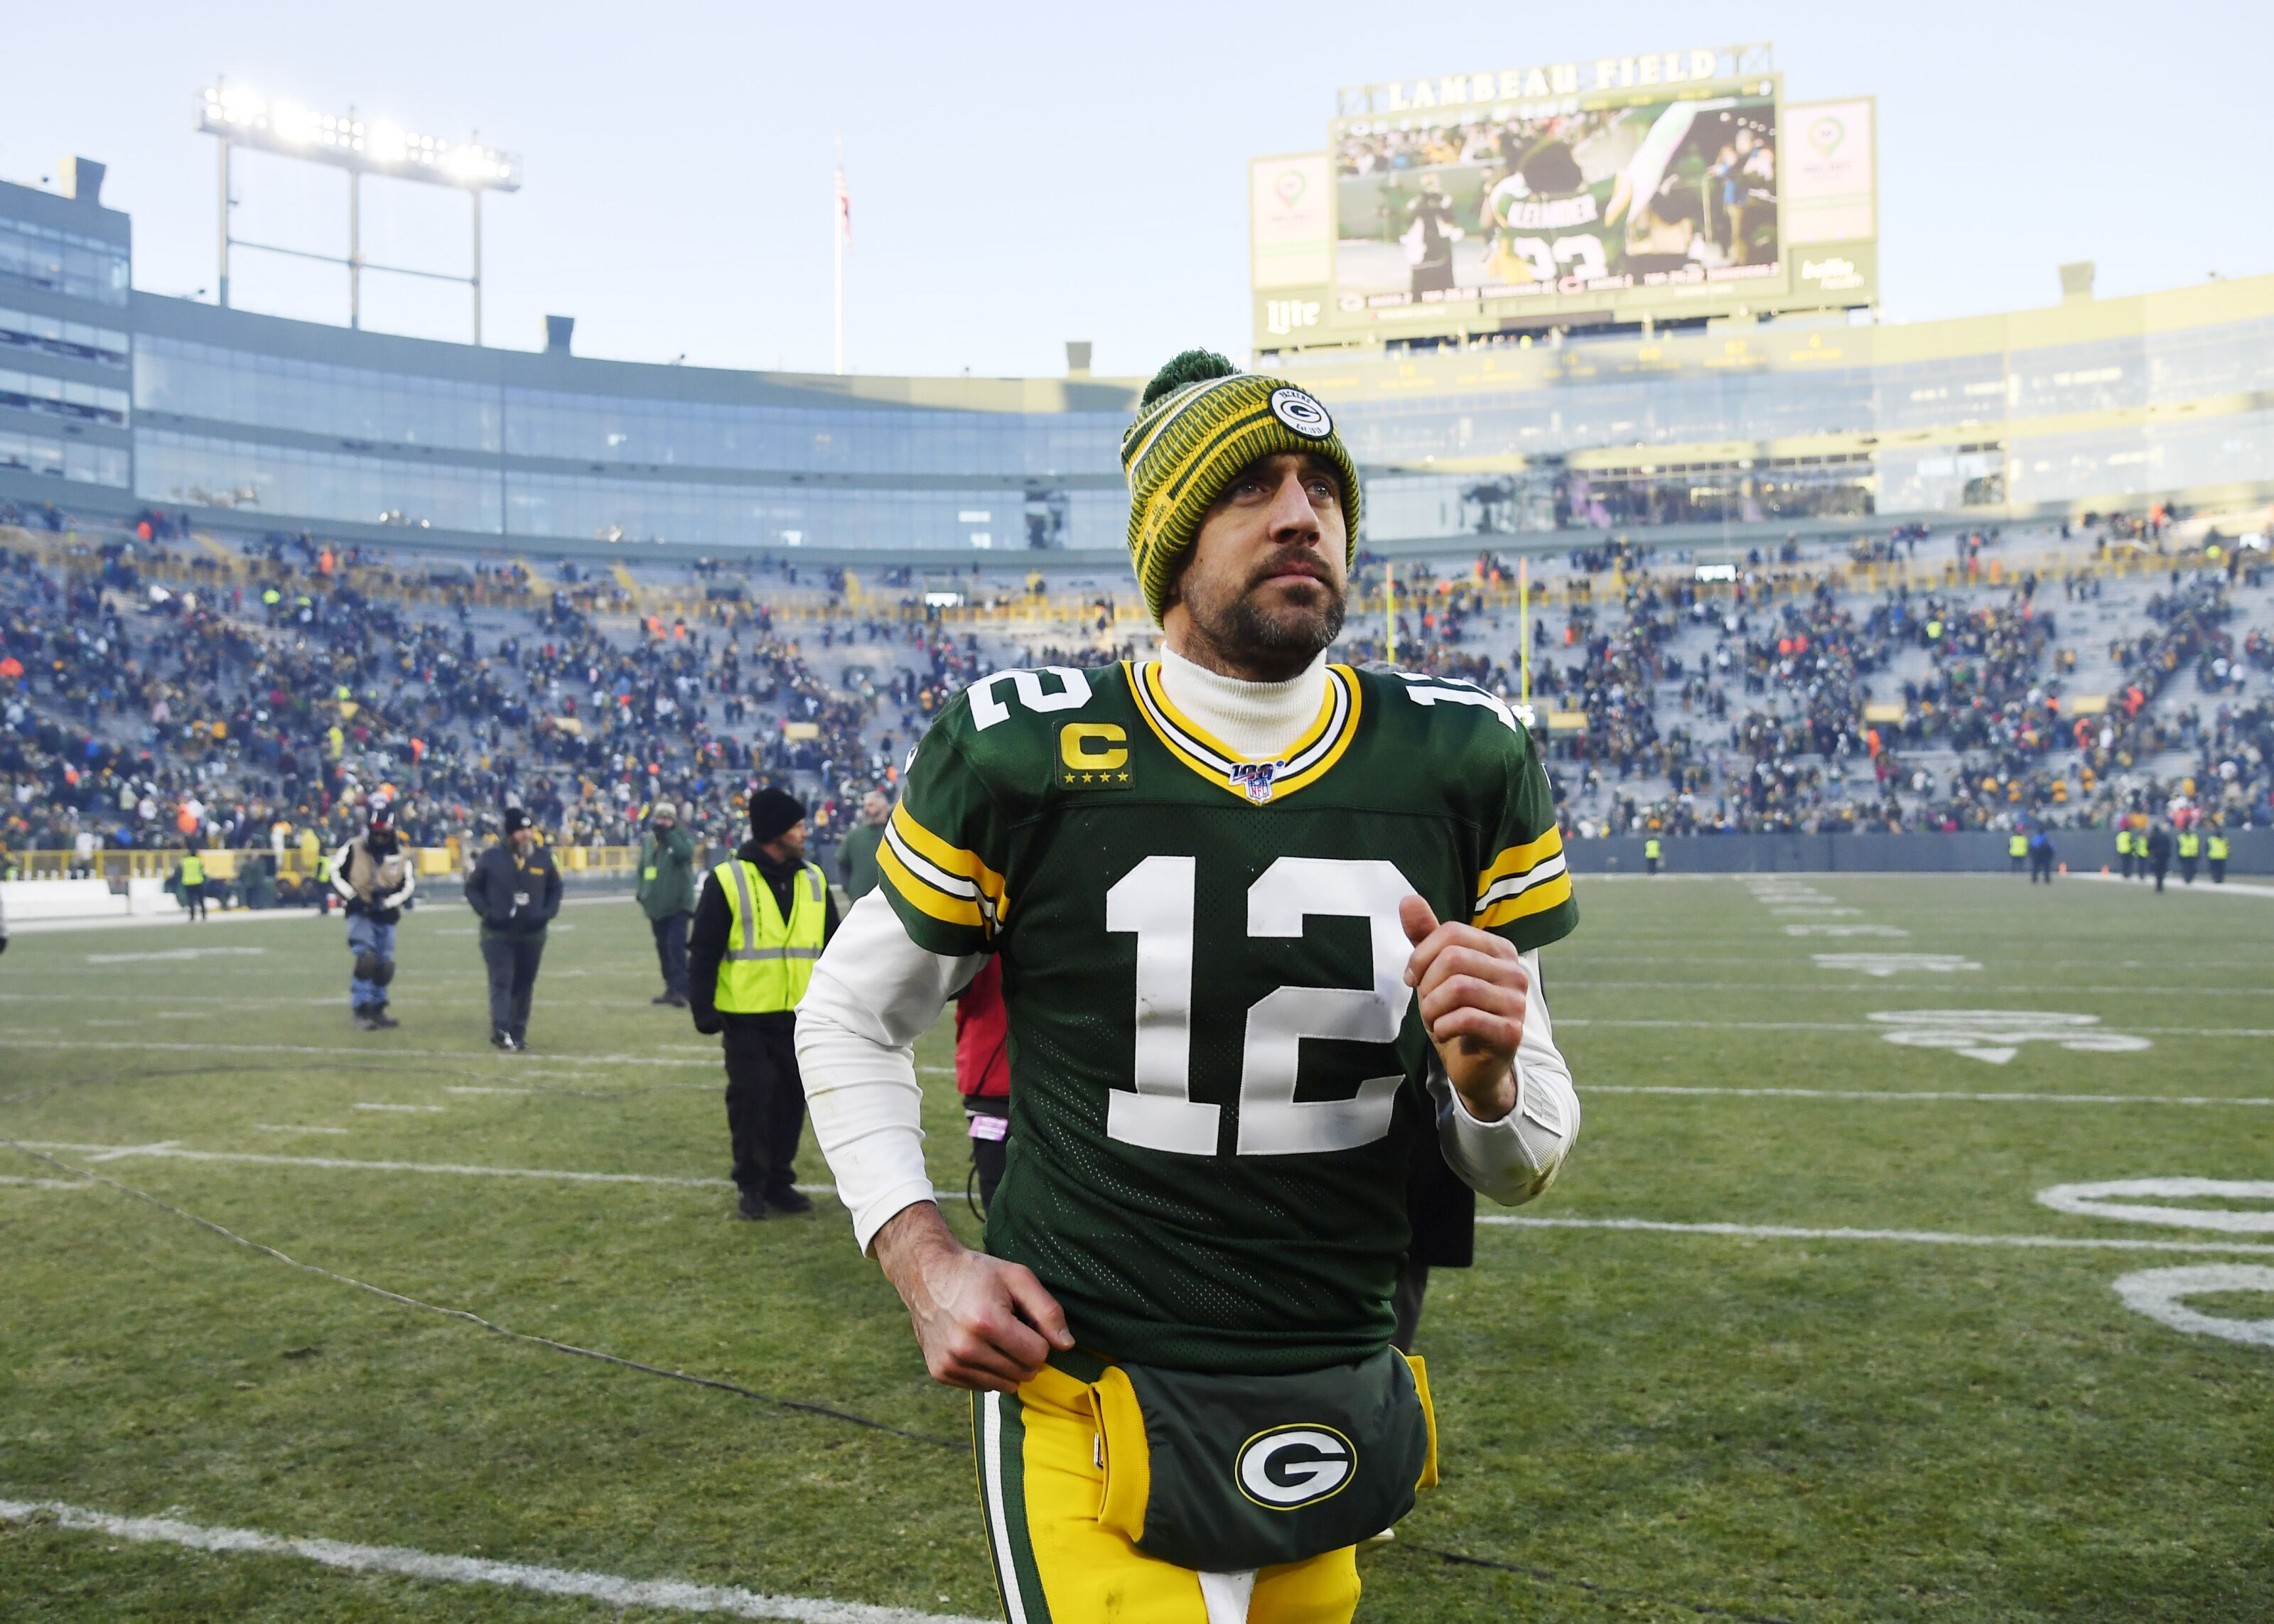 Green Bay Packers v. Chicago: The Good, the Bad & the Ugly